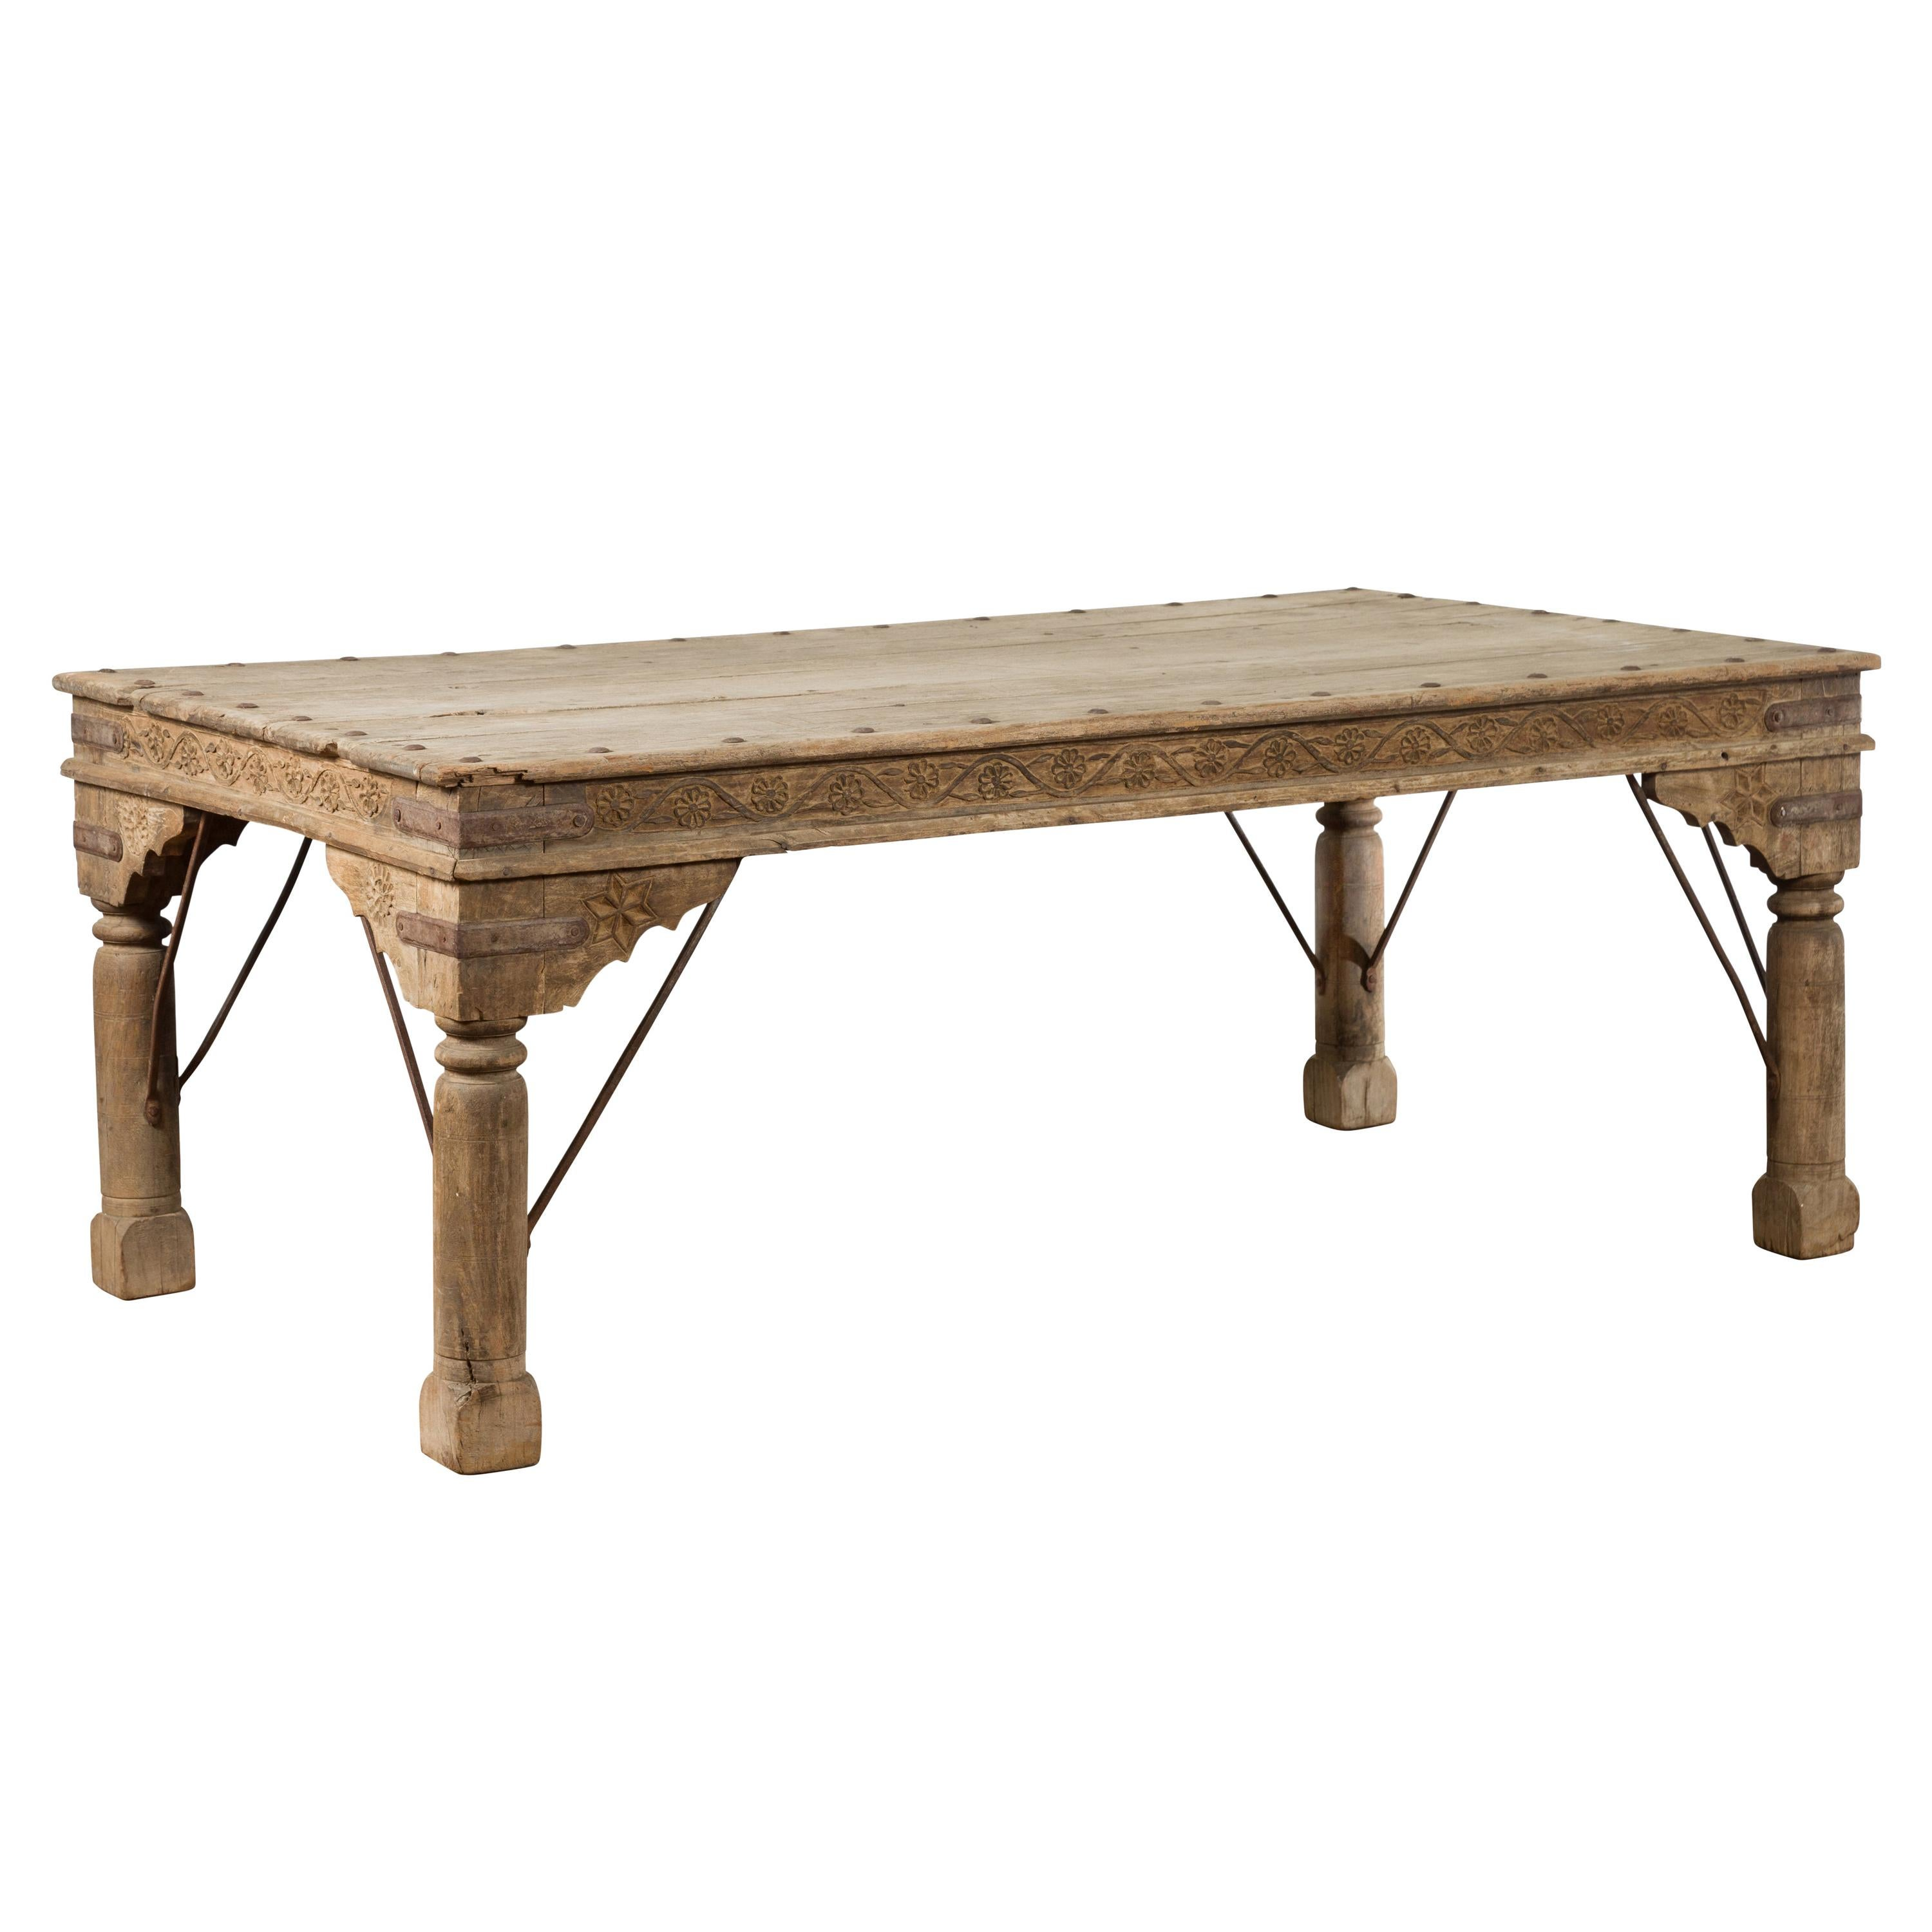 Indian Bleached Sheesham Wood and Iron Courtyard Door Made into a Coffee Table